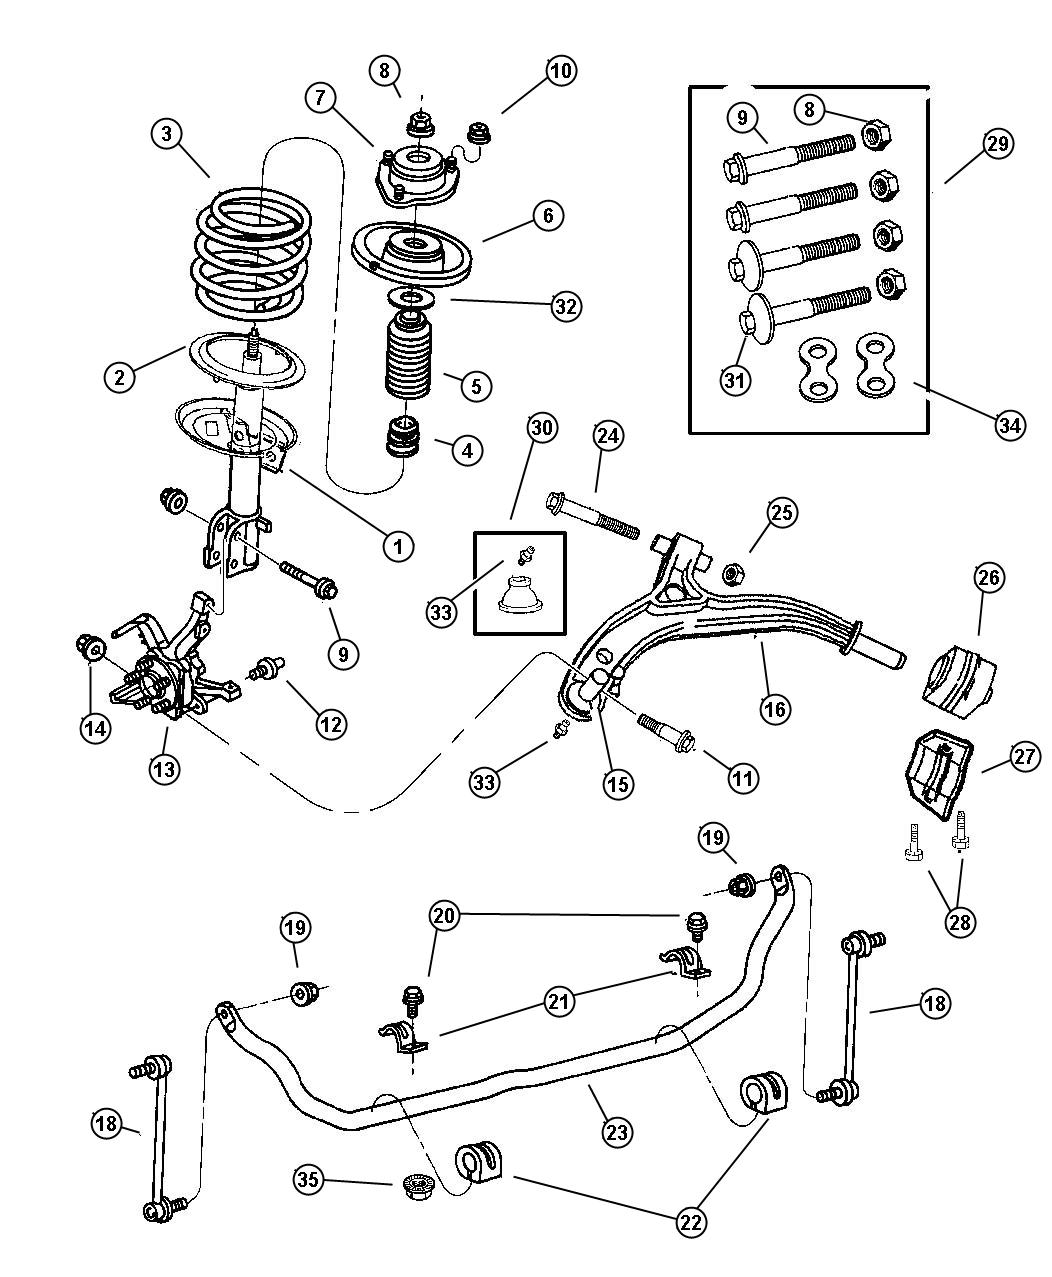 2000 Chrysler Voyager Fuse Box Diagram